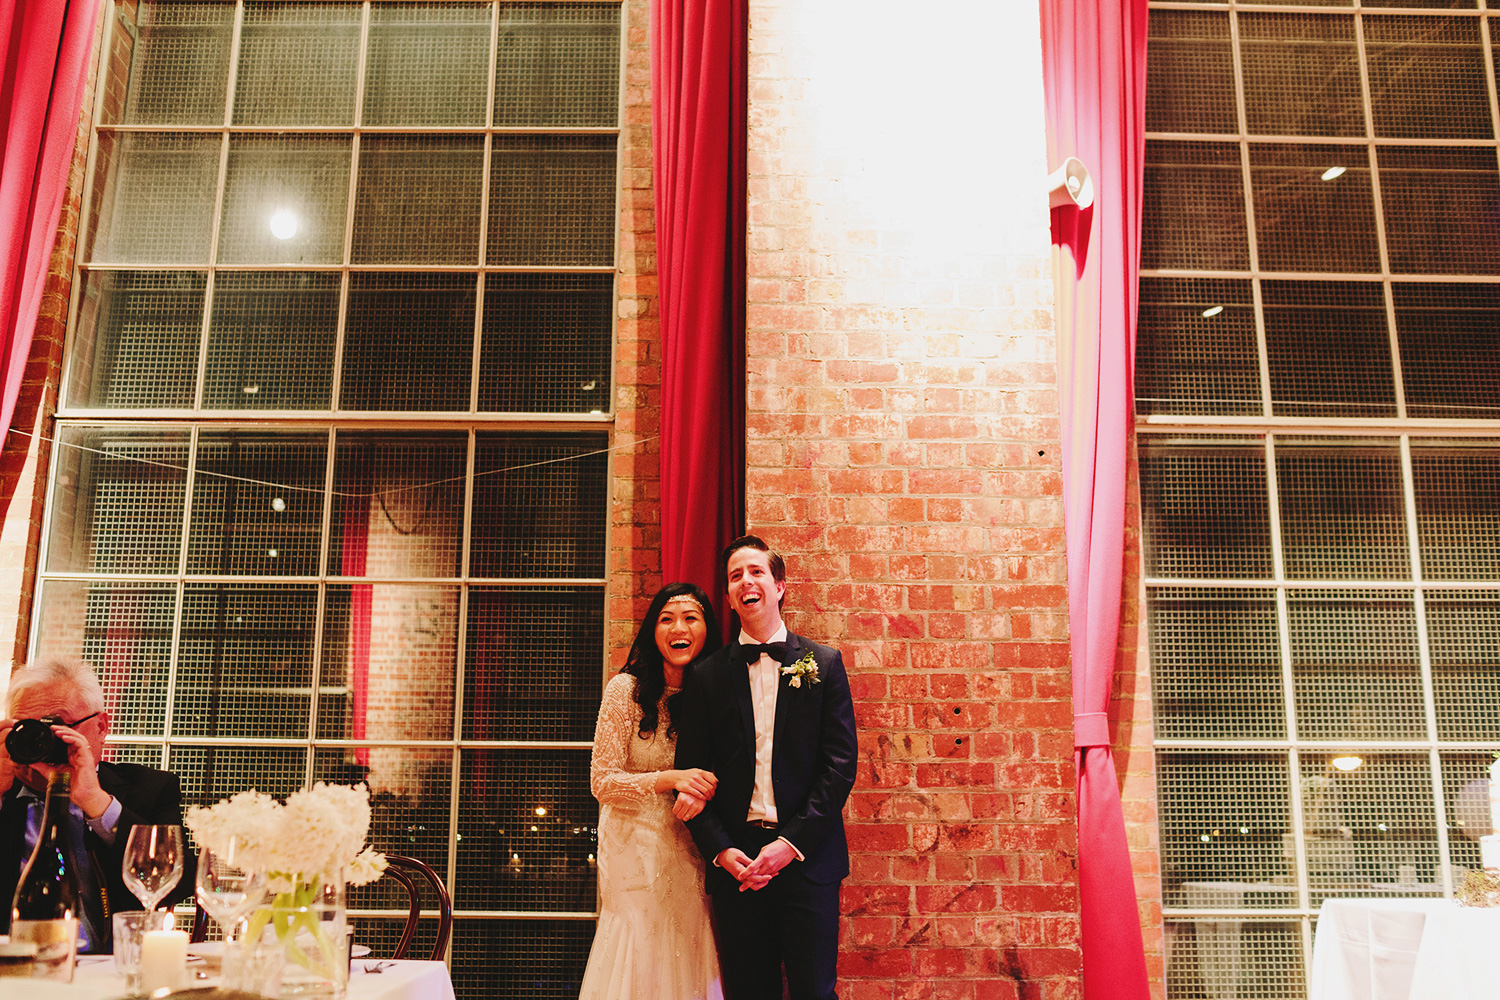 110-Sayher-&-Amelia-Melbourne-Wedding.jpg